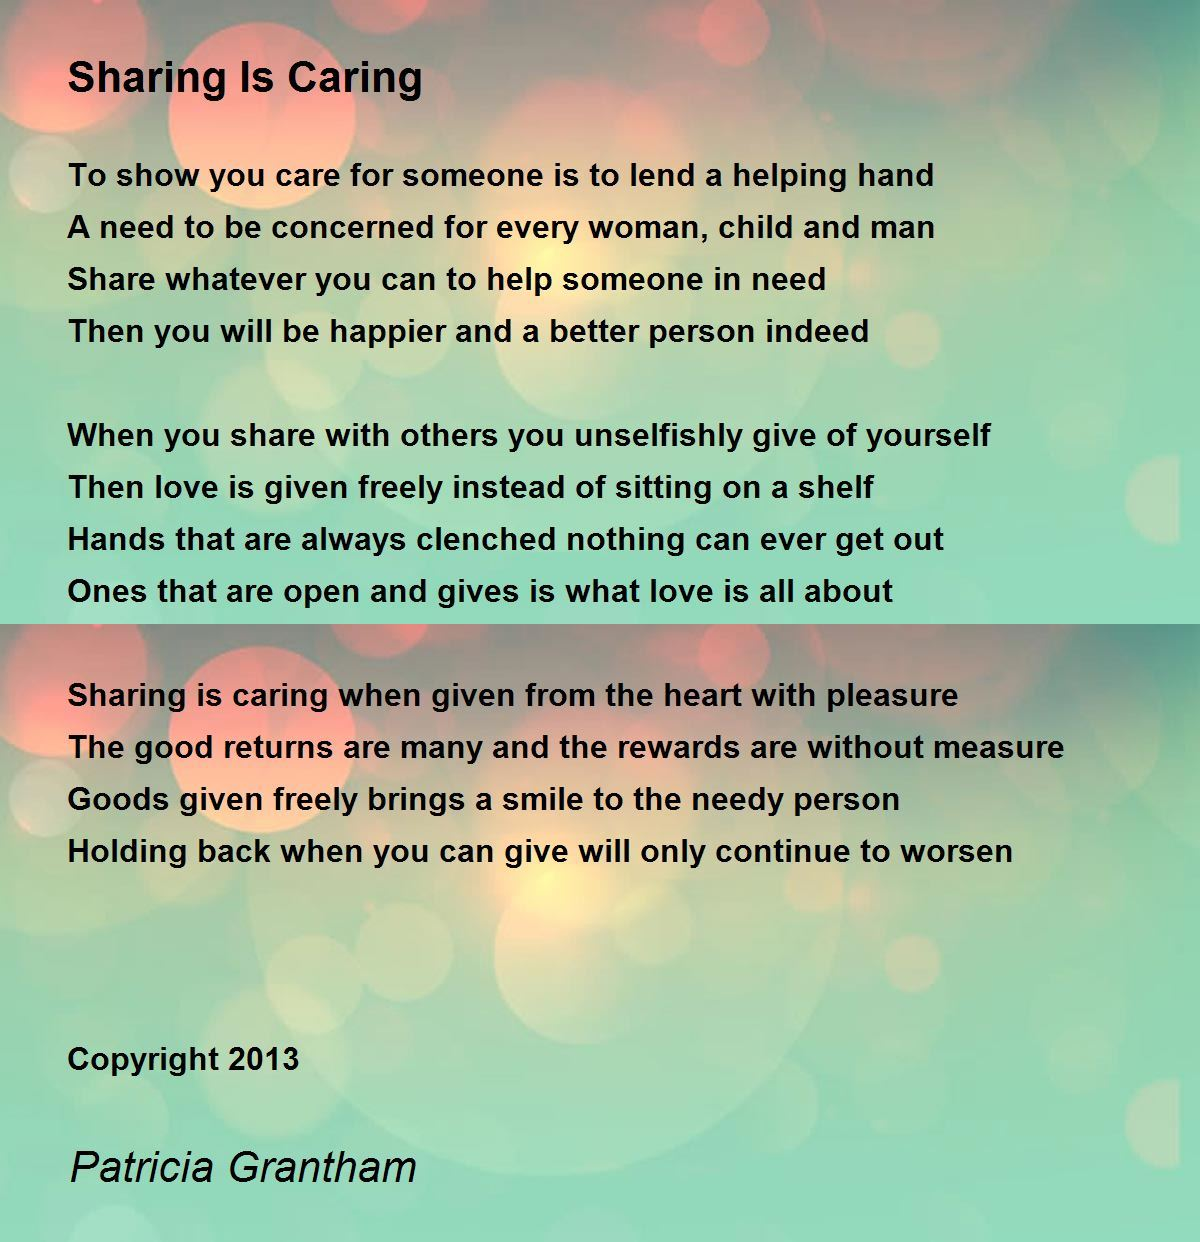 how to write a personal sharing and caring essay generosity caring sharing giving hospitality charity quotations sayings aphorisms quips quotes wisdom poetry compiled by michael p term papers